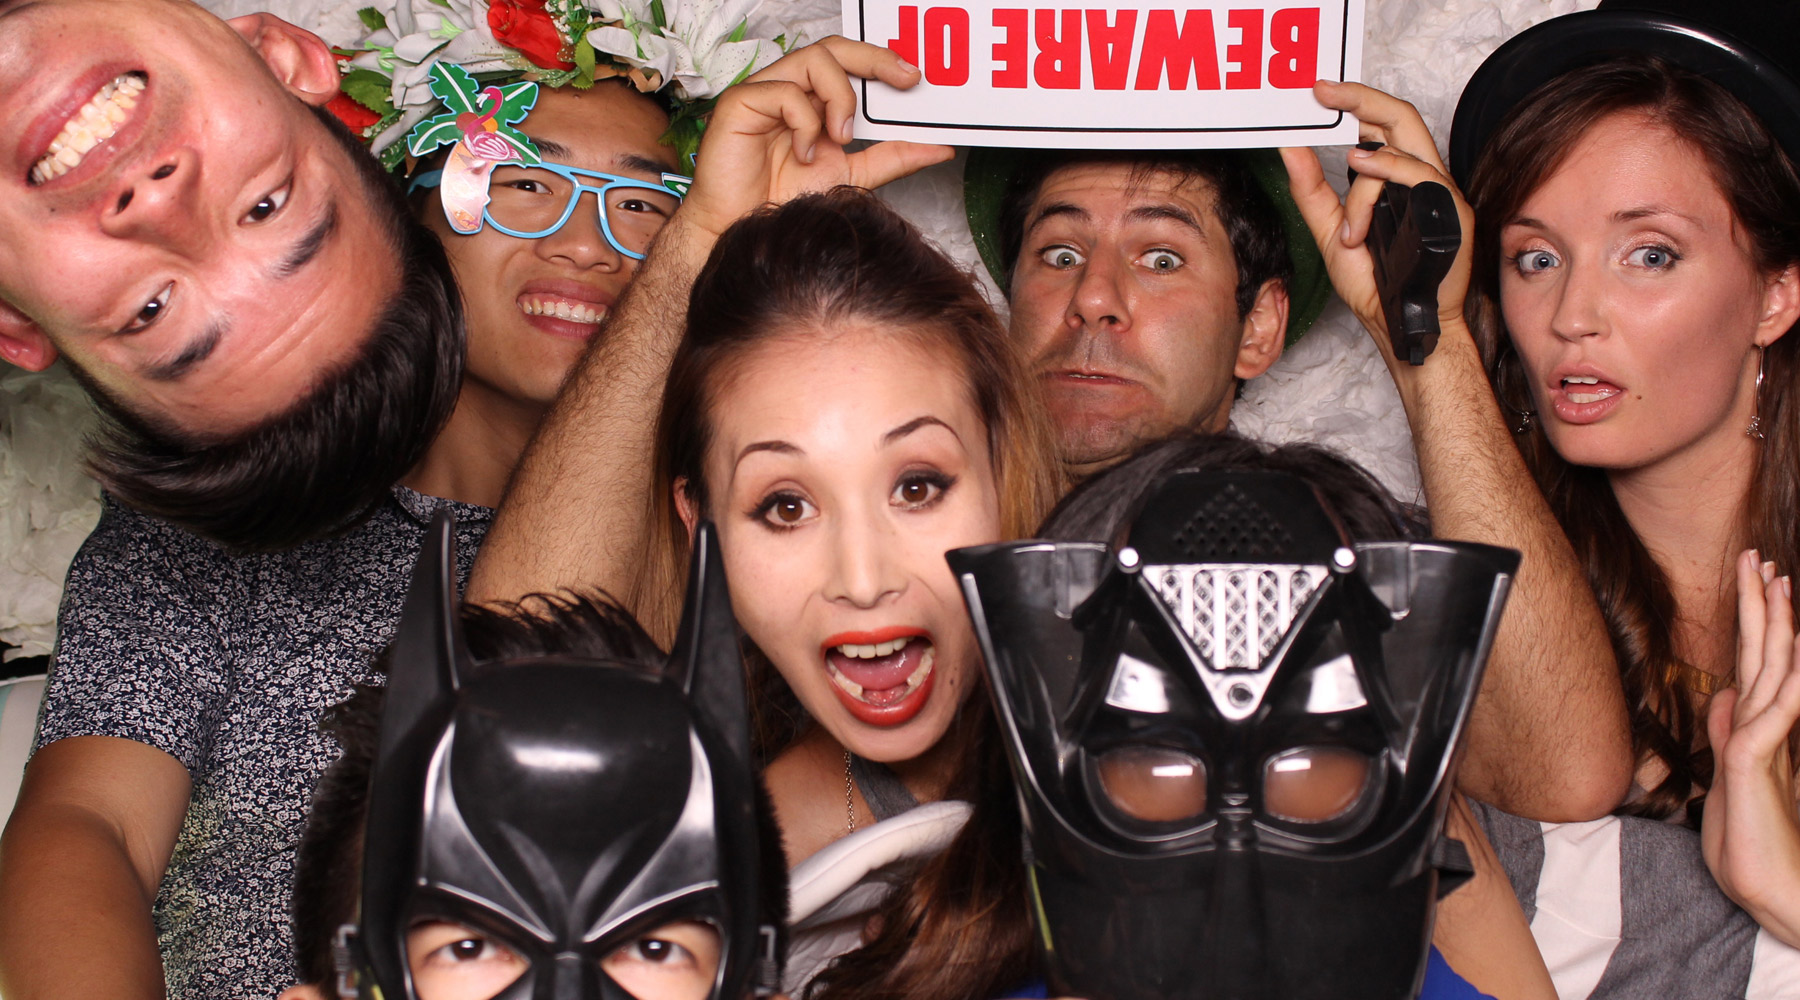 wedding photobooth hire, corporate photo booth, large photo booth, photobooth hire auckland, event hire auckland